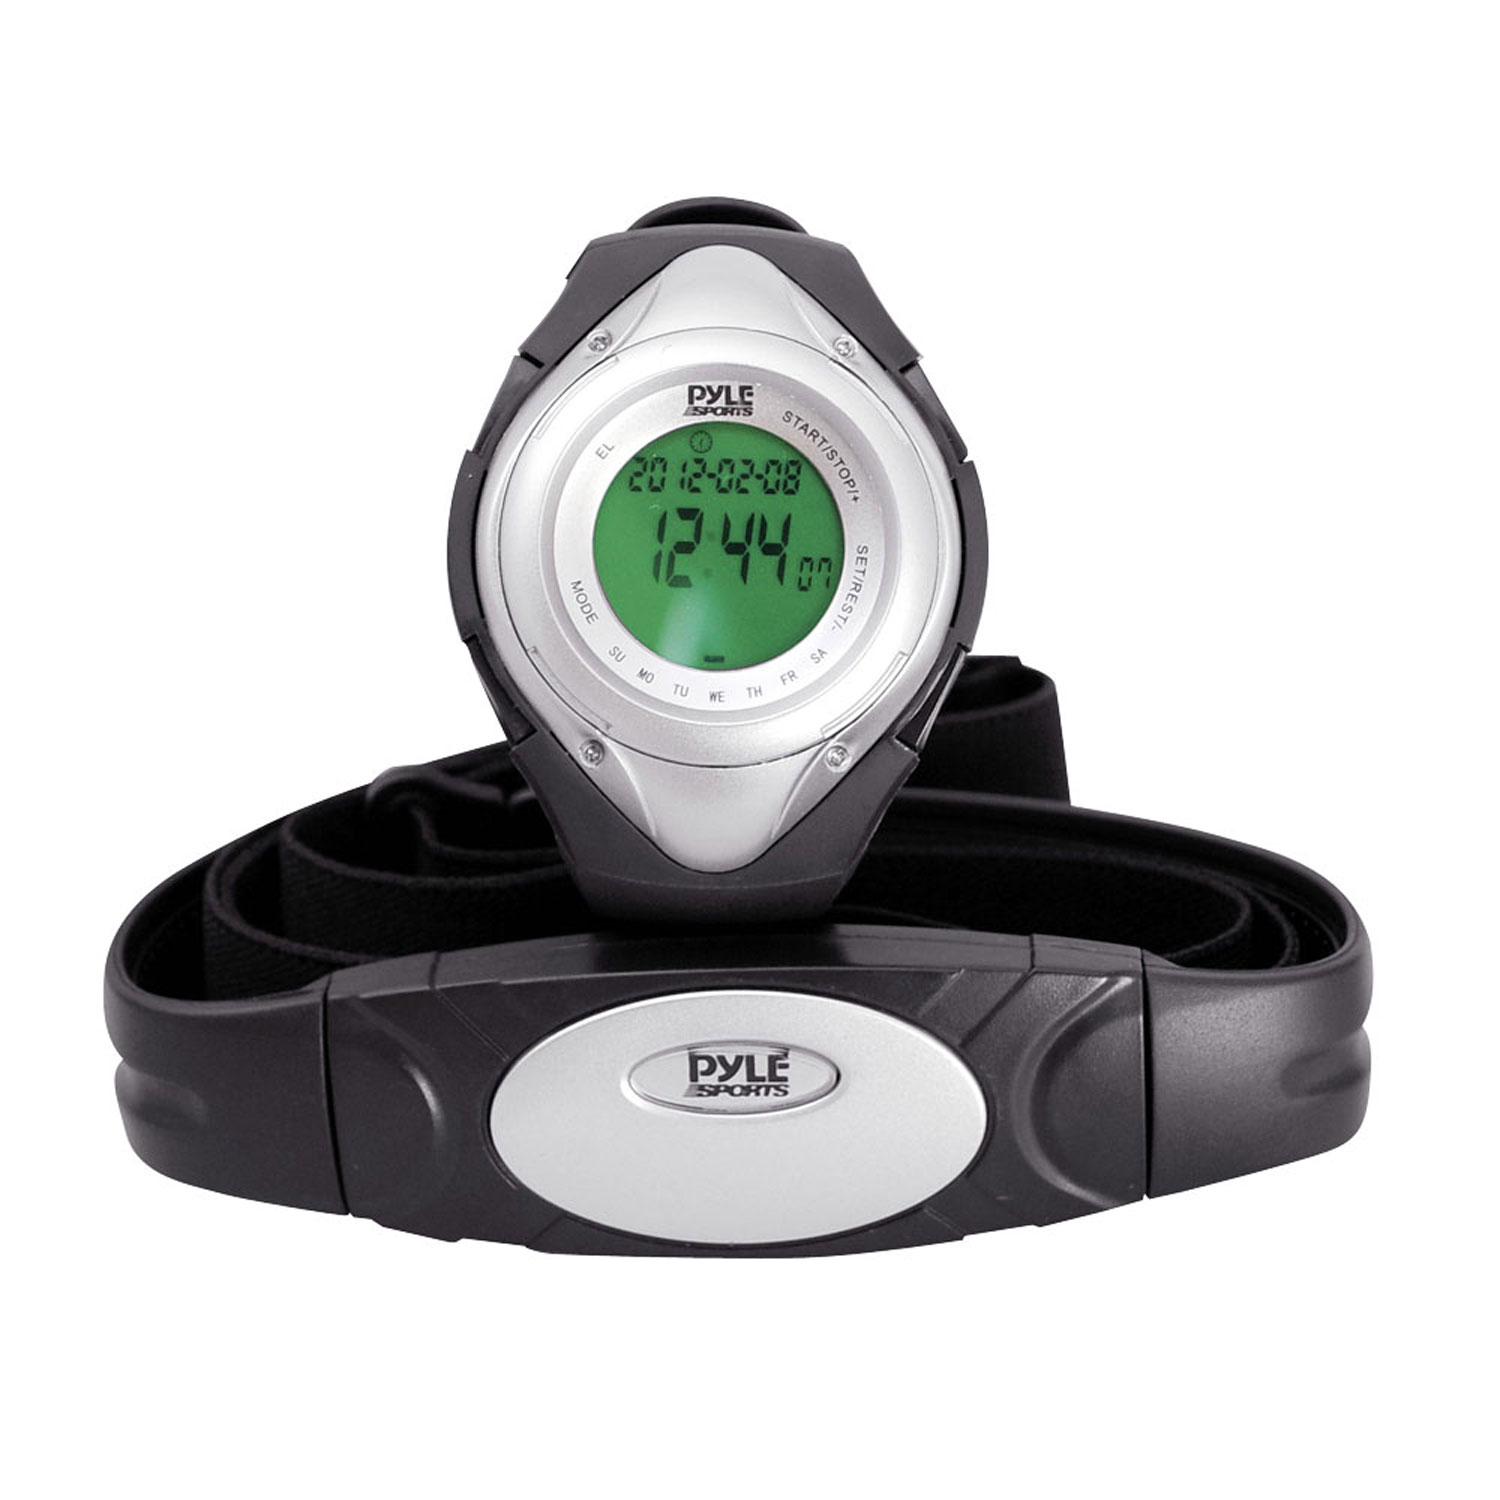 Pyle Heart Rate Monitor Watch W/Minimum, Average Heart Rate, Calorie Counter, and Target Zones(Silver Color)